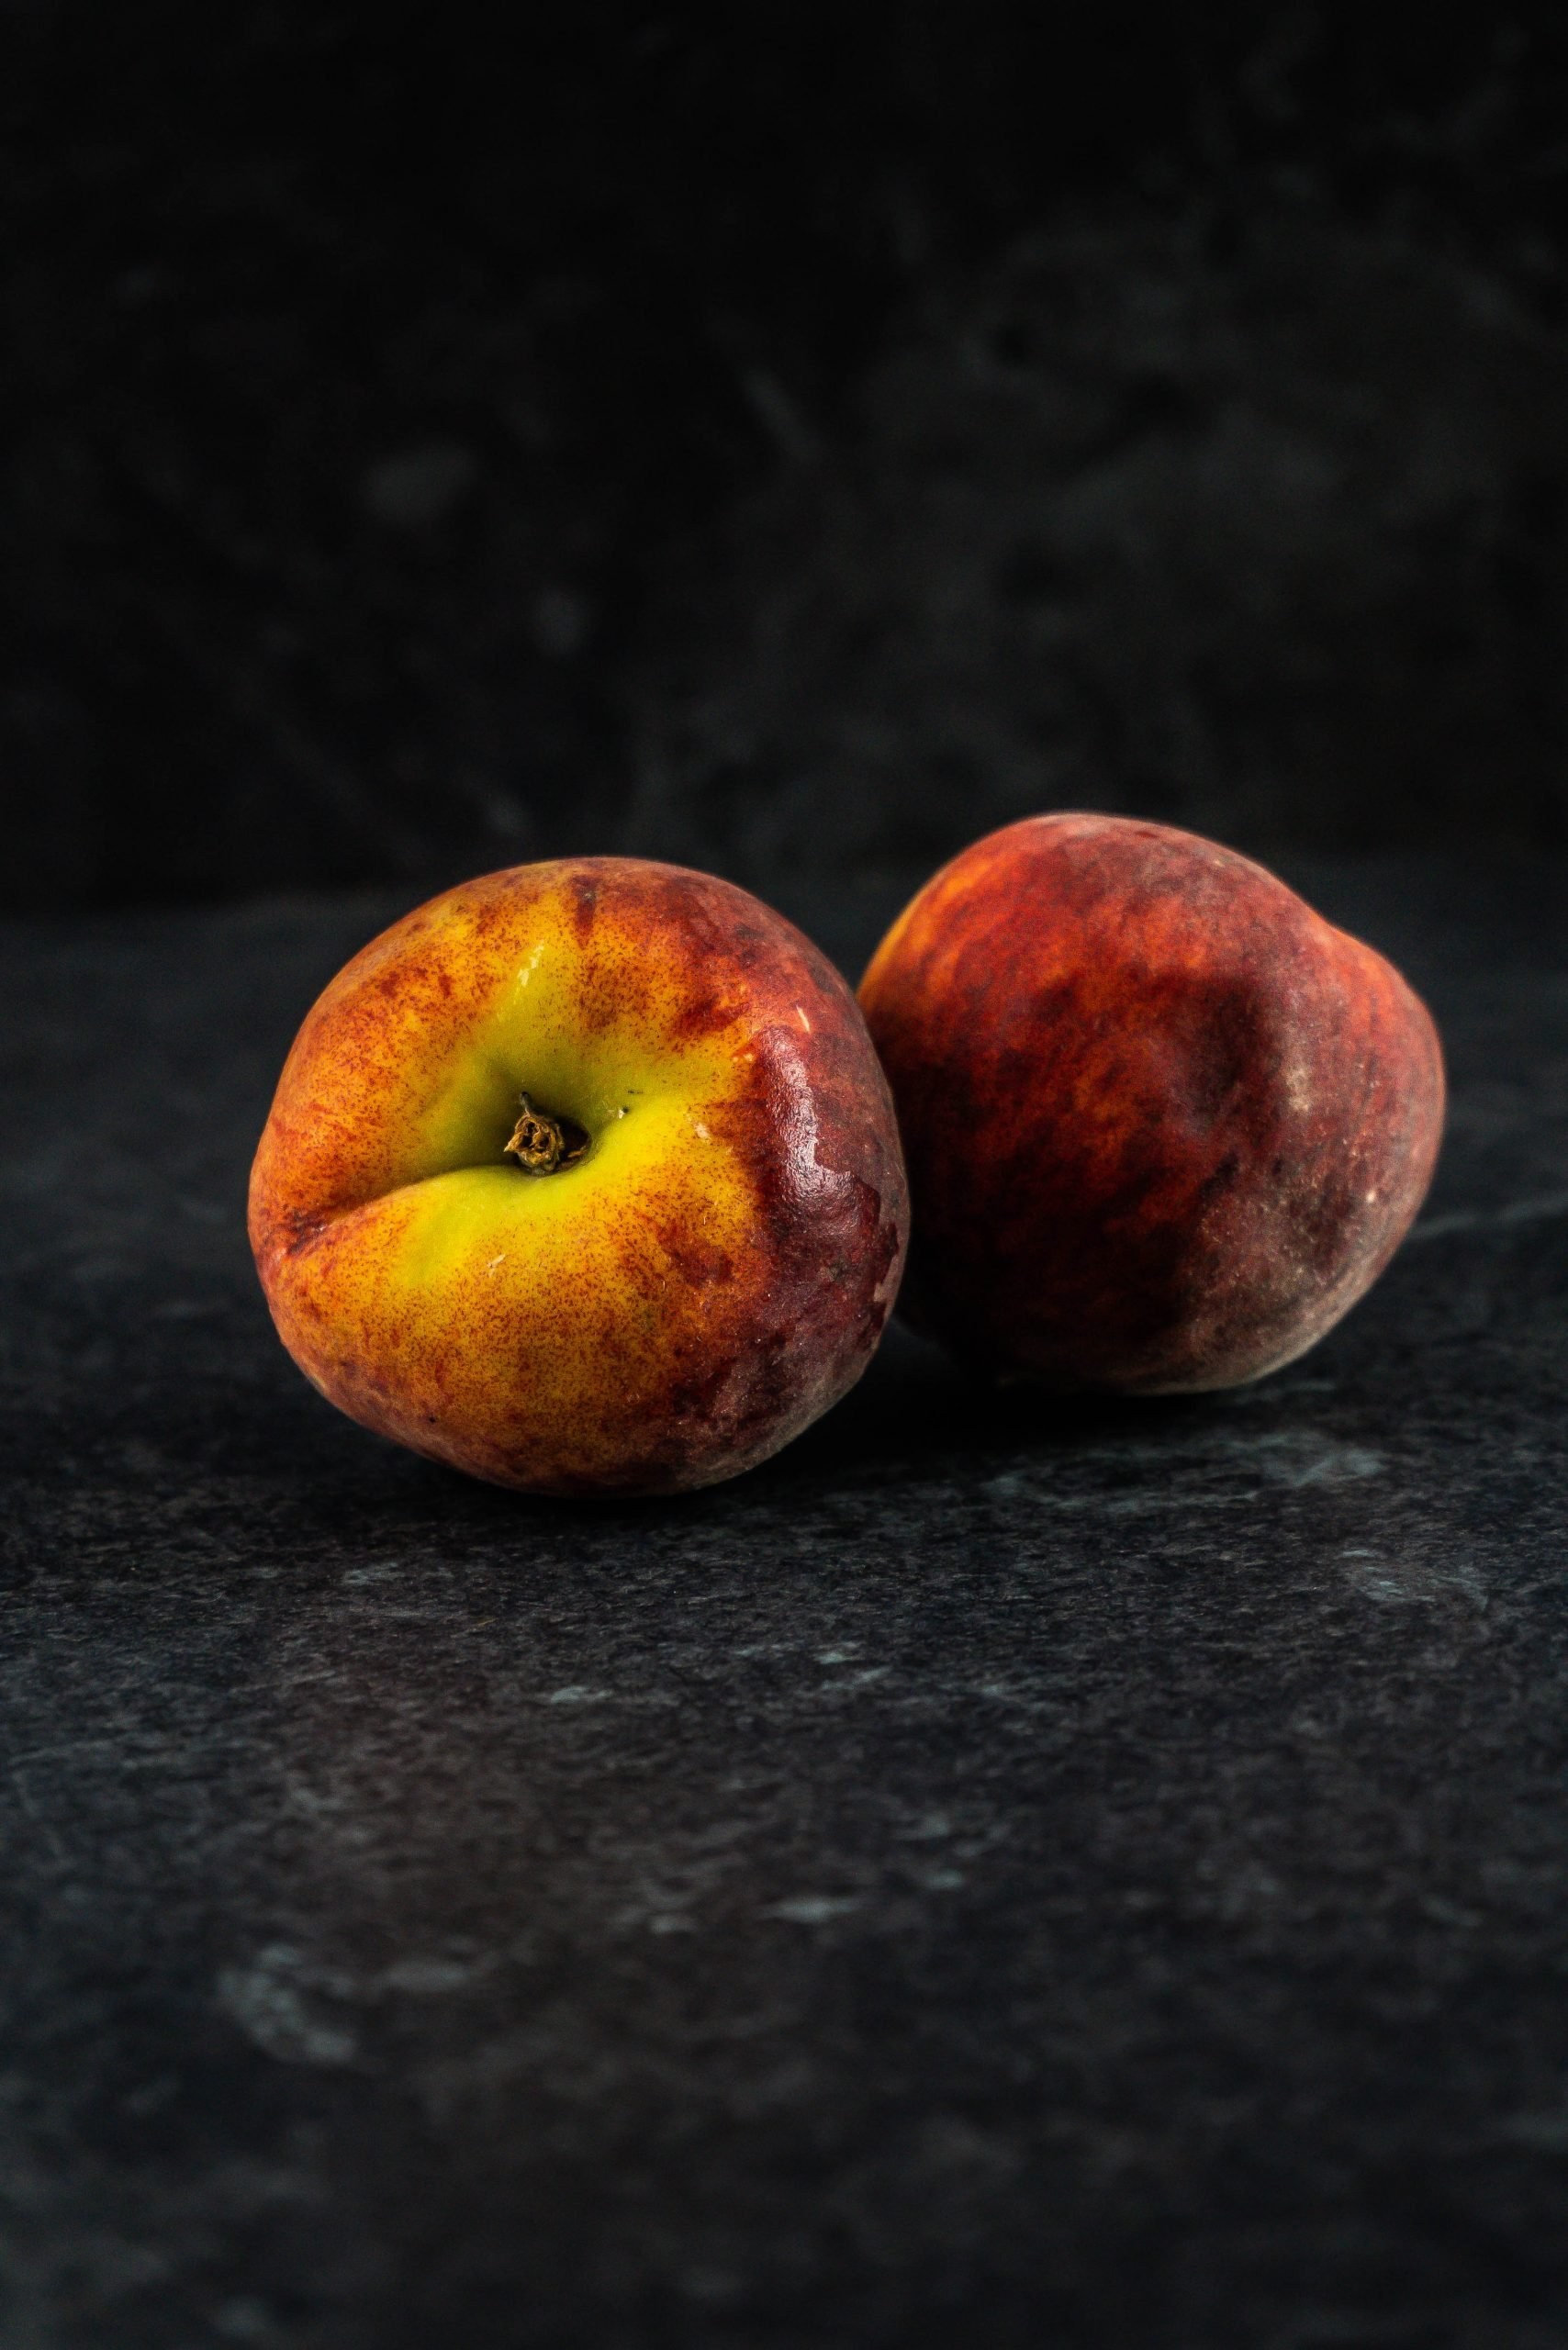 Two peaches on a dark background